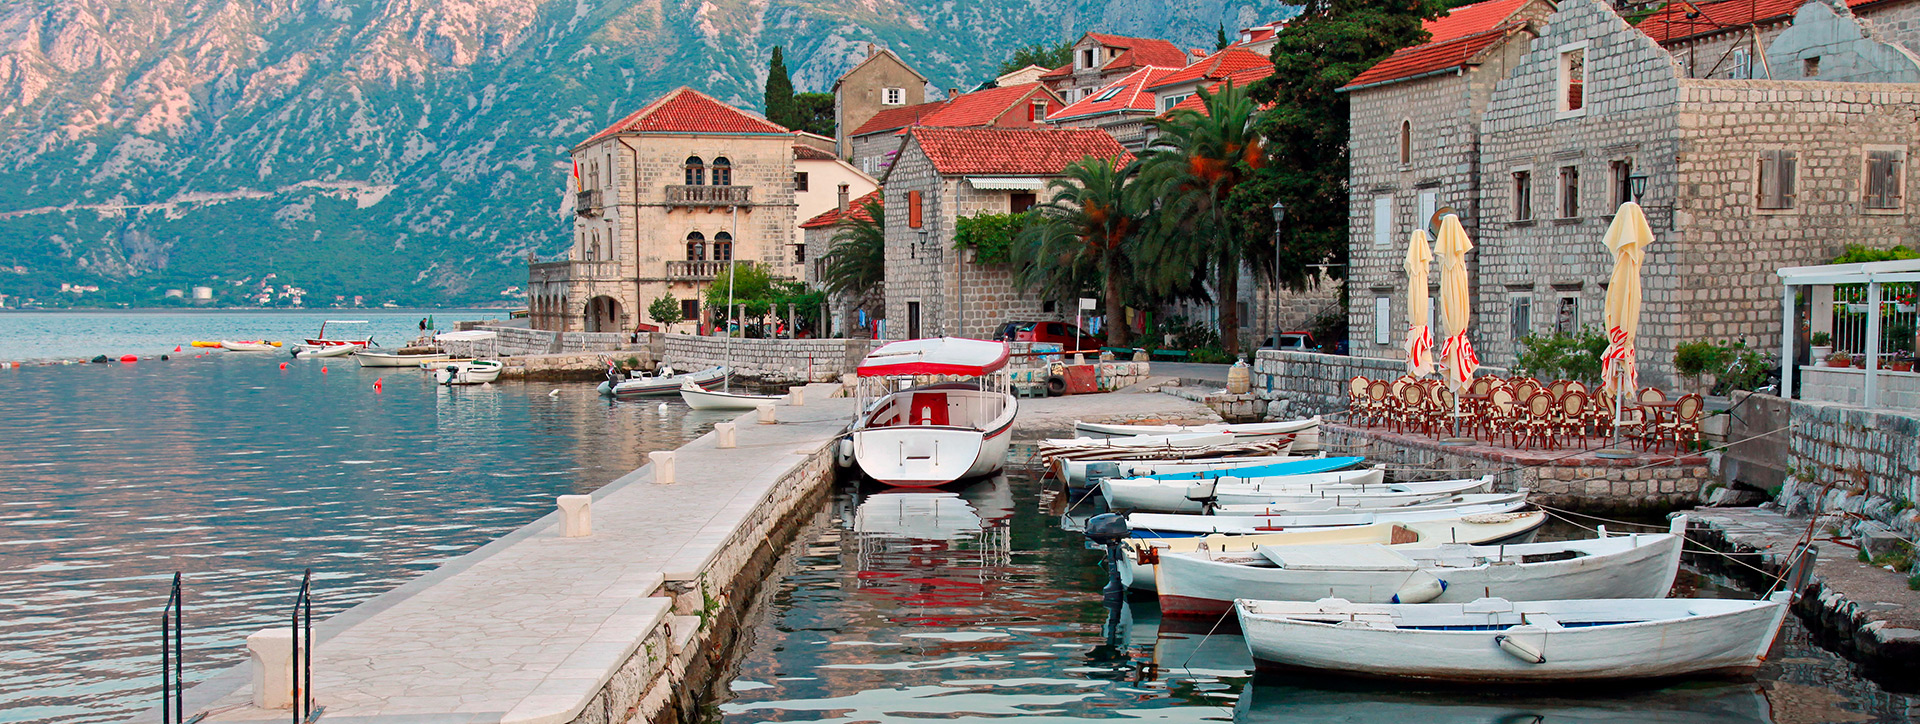 Boat parking, Perast, Montenegro - SimpleSail sailing routes